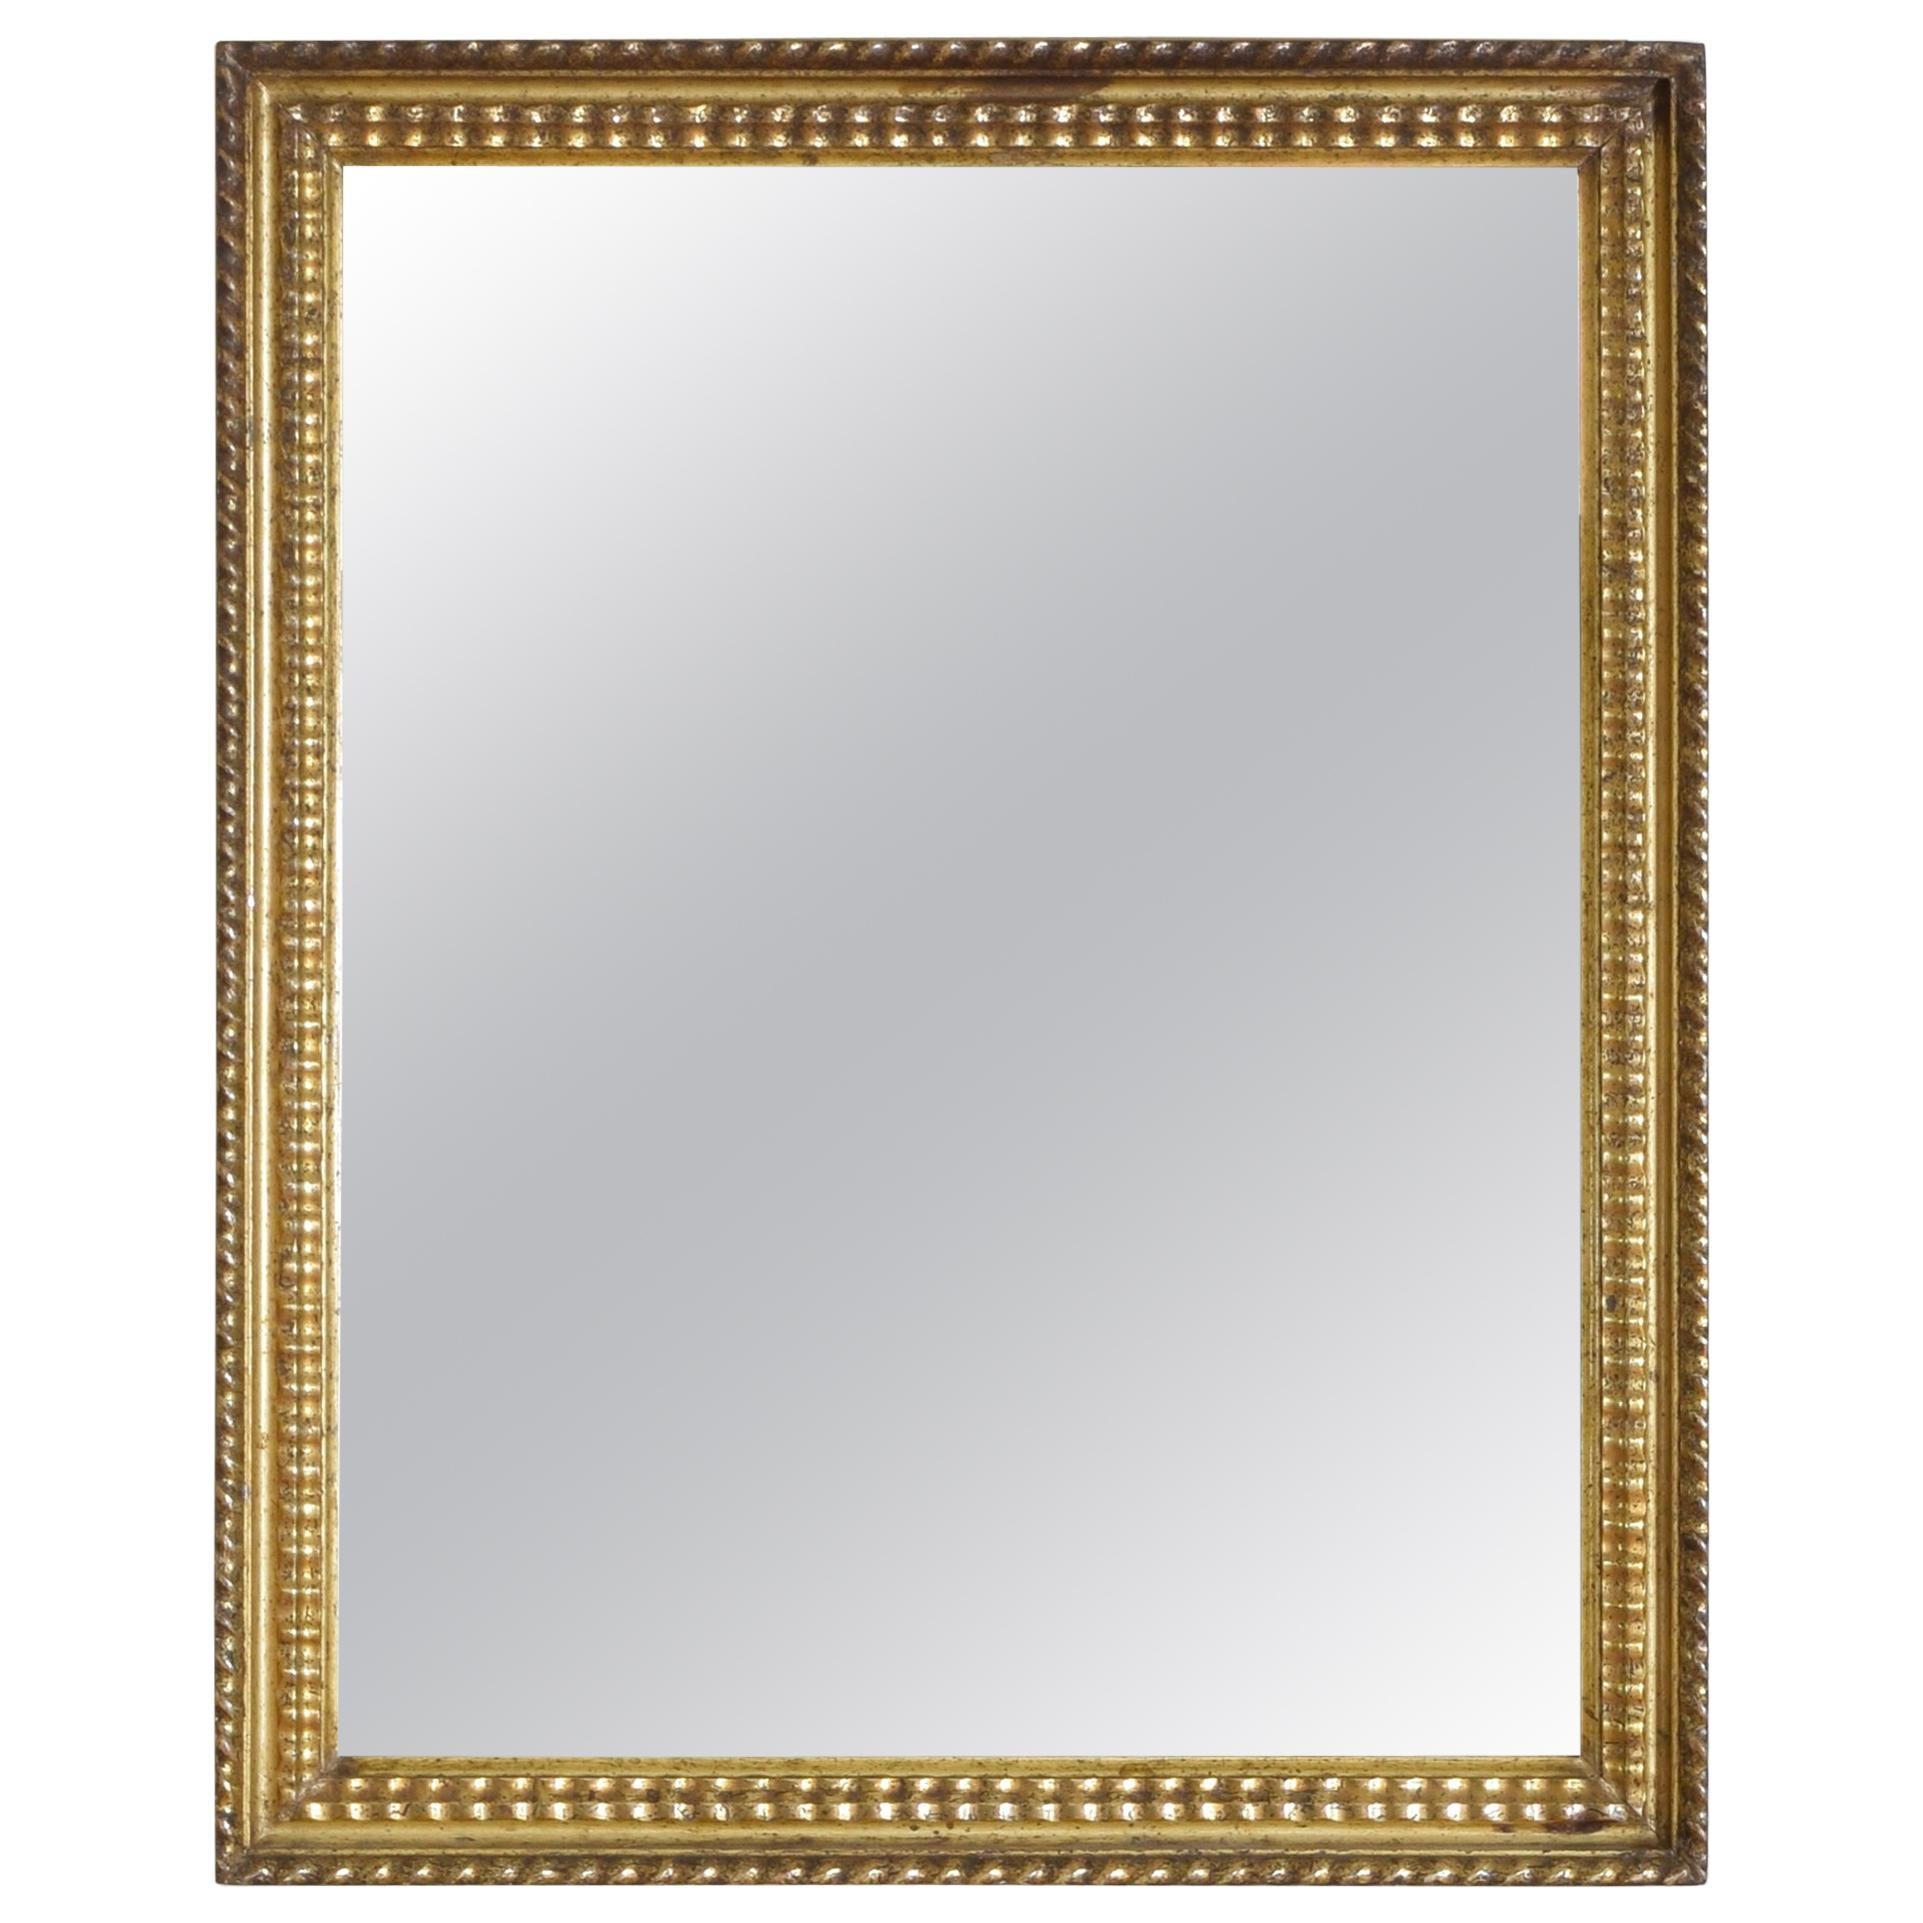 French Late Neoclassic Carved Giltwood and Gilt Gesso Mirror, Mid 19th Century